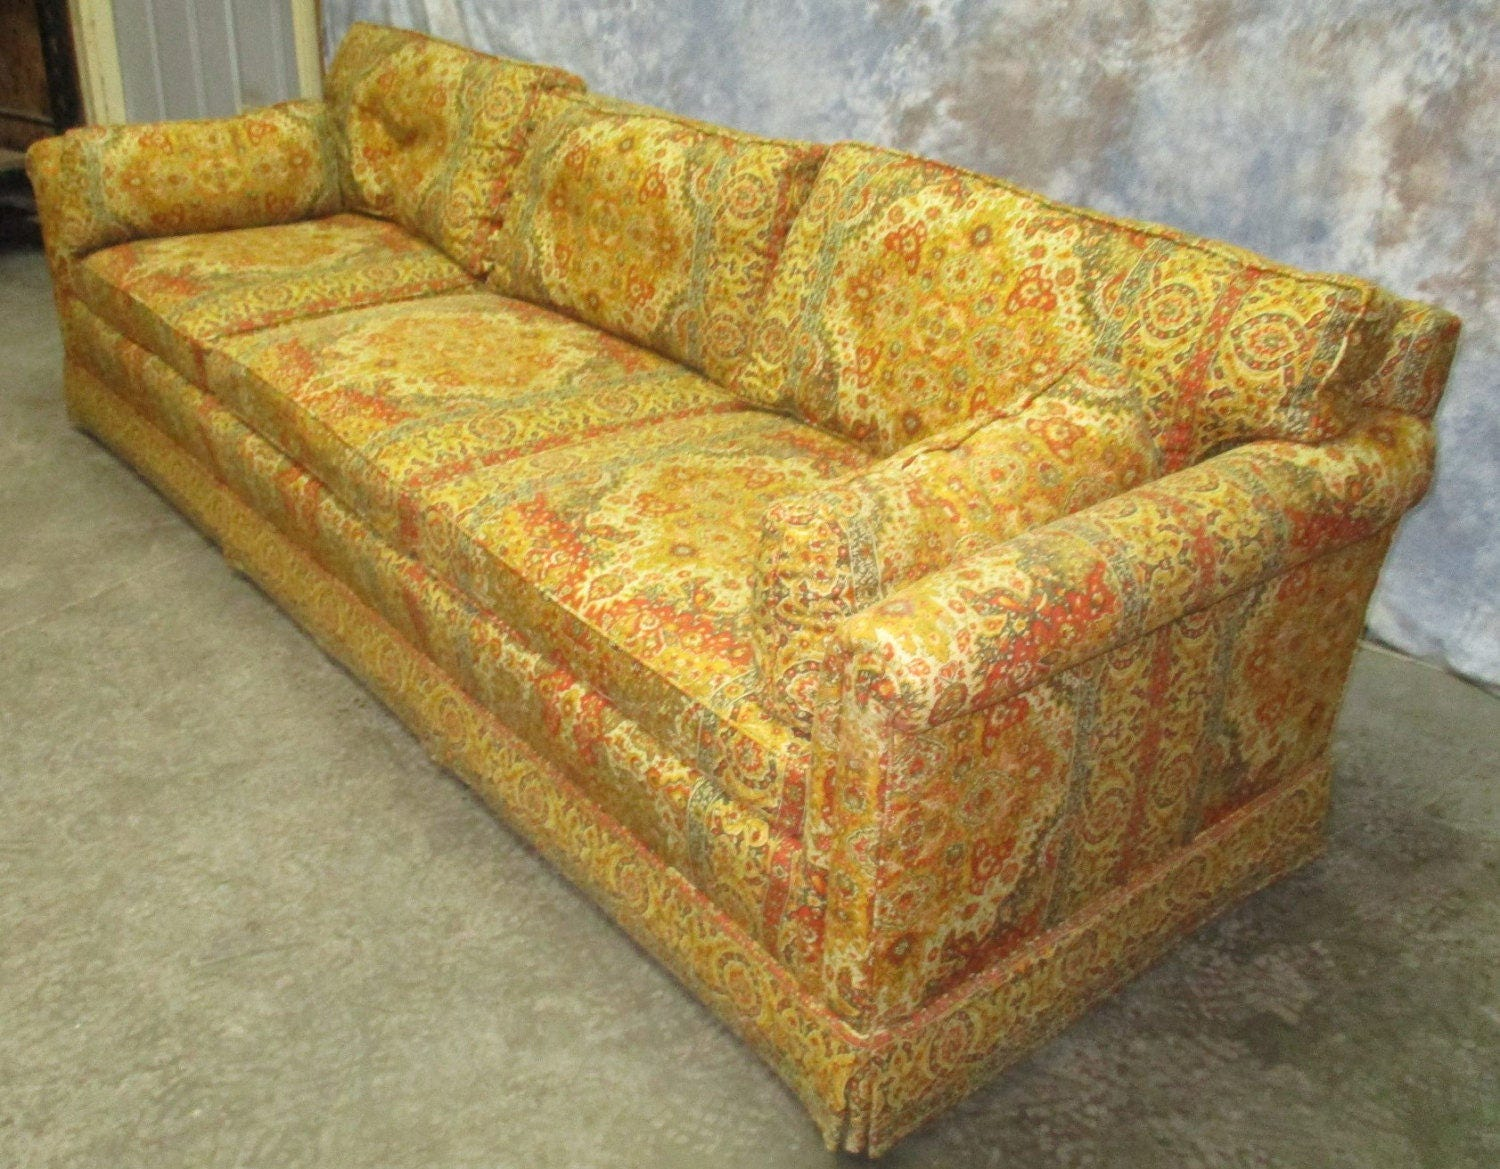 Retro fabric davenport couch sofa vintage 60s 70s danish for Designer chairs from the 60s